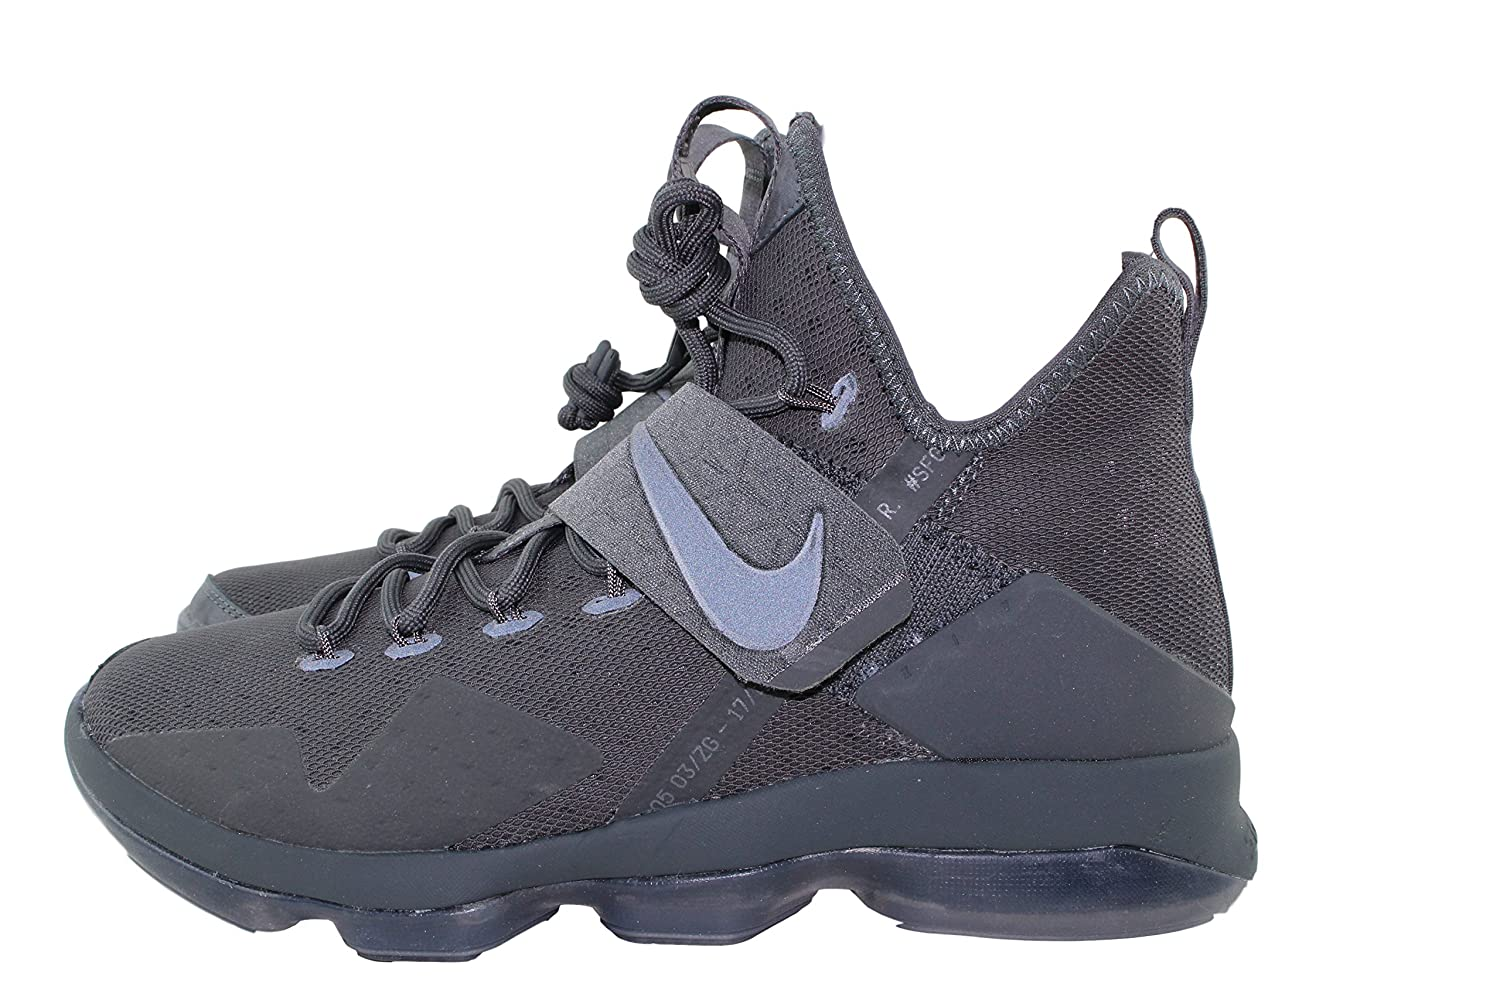 on sale 313fa af7bc Amazon.com  NIKE Lebron XIV 14 Limited Triple Black Anthracite Zero Dark  Thirty-23 (852402-002) (9.5)  Shoes